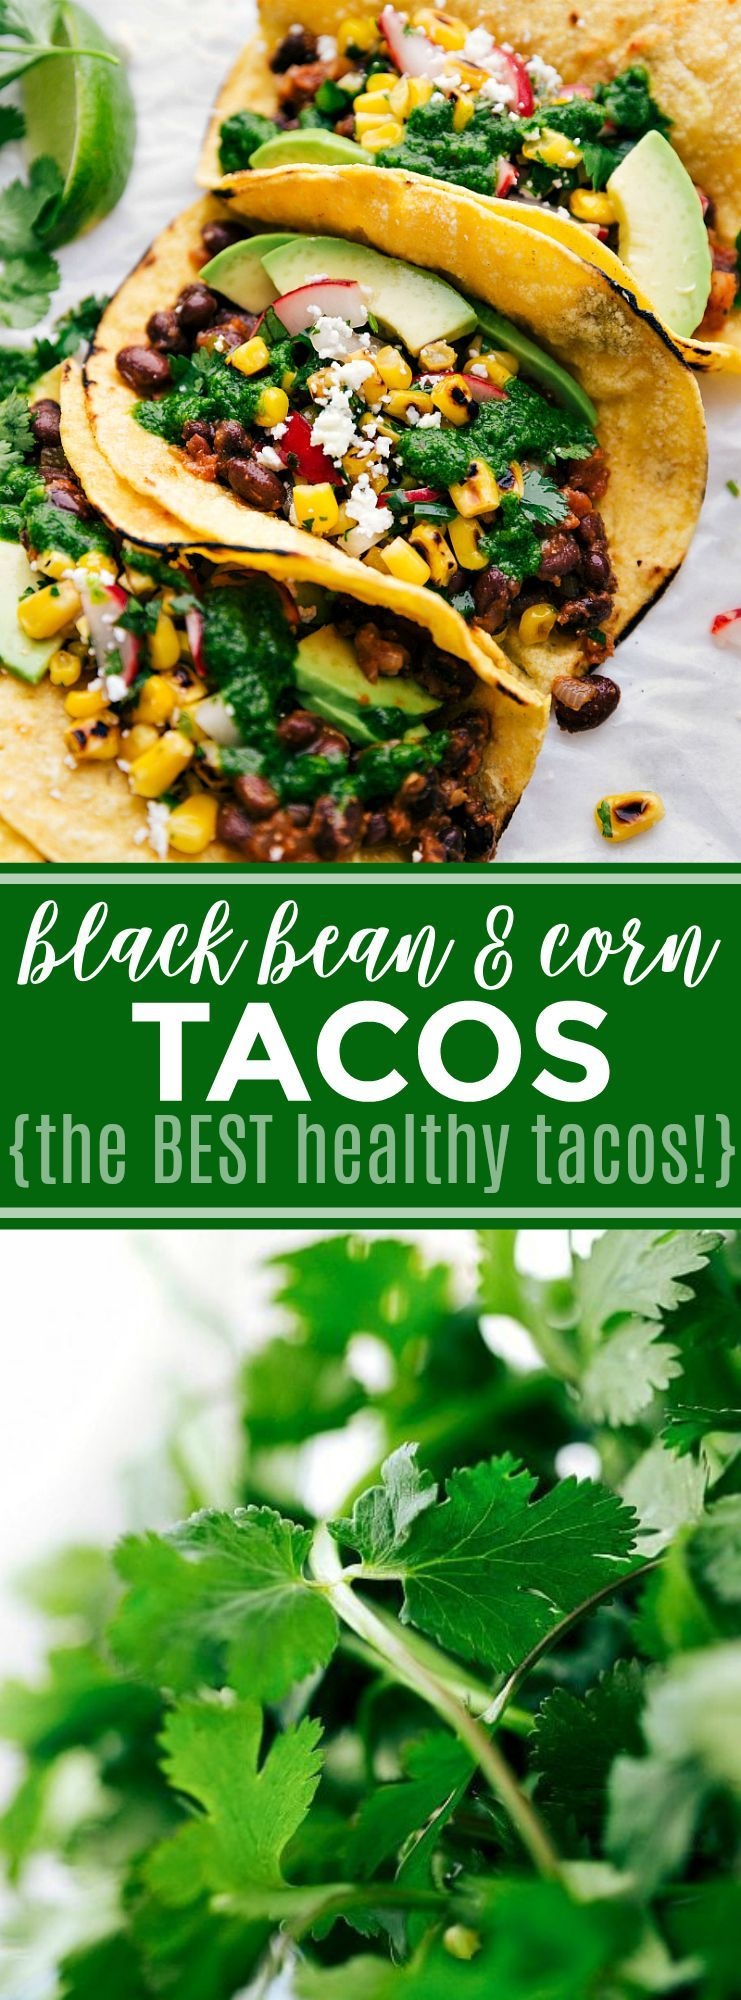 Healthy tacos made with seasoned black beans, a corn relish, fresh avocado, and a delicious cilantr